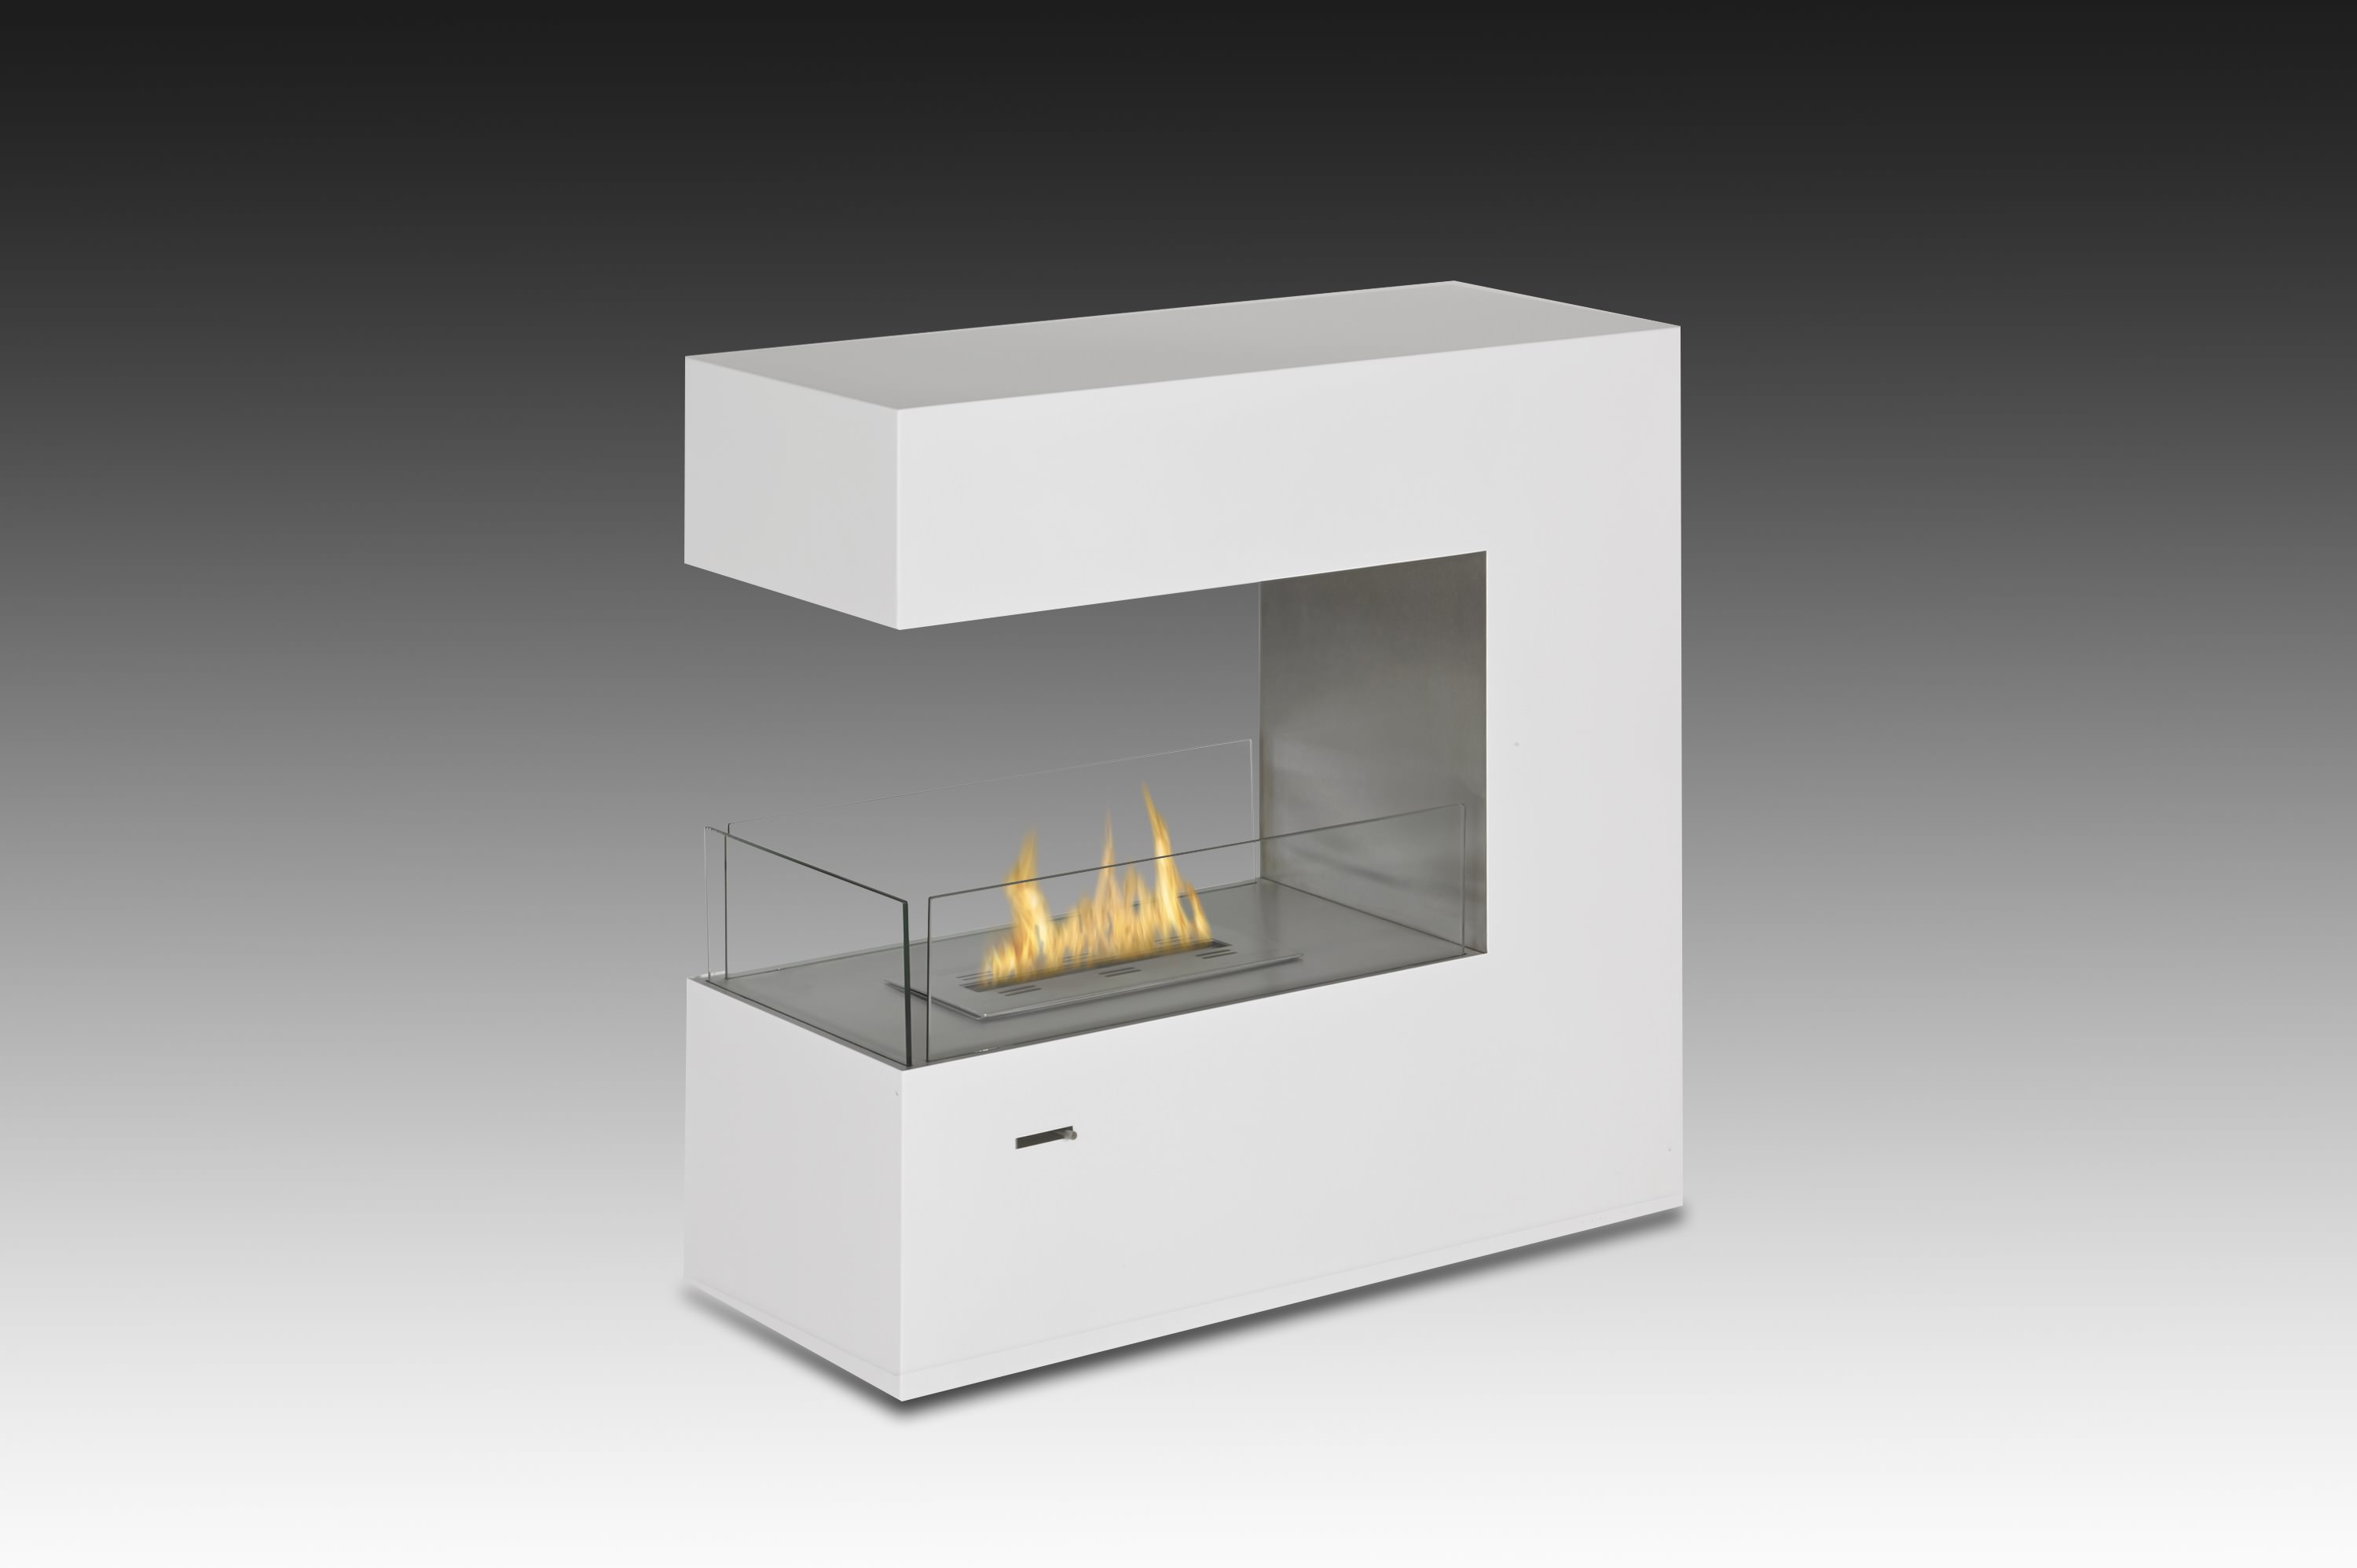 pin fireplace ecosmart fire complement electric white monochrome a with and surround sleek chrome living